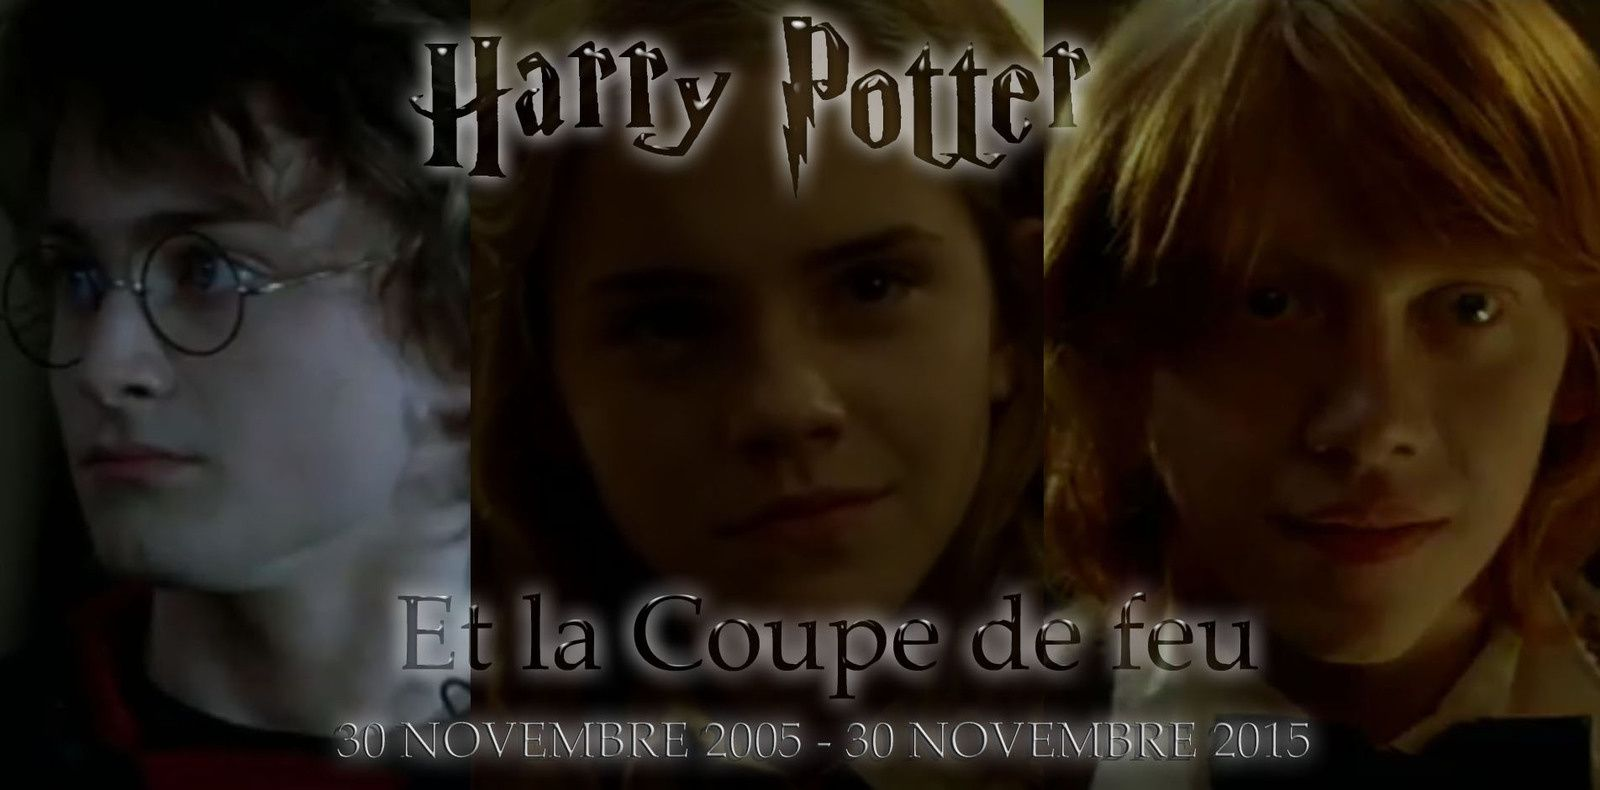 Harry potter et la coupe de feu m r t c infinity - Streaming harry potter et la coupe de feu ...